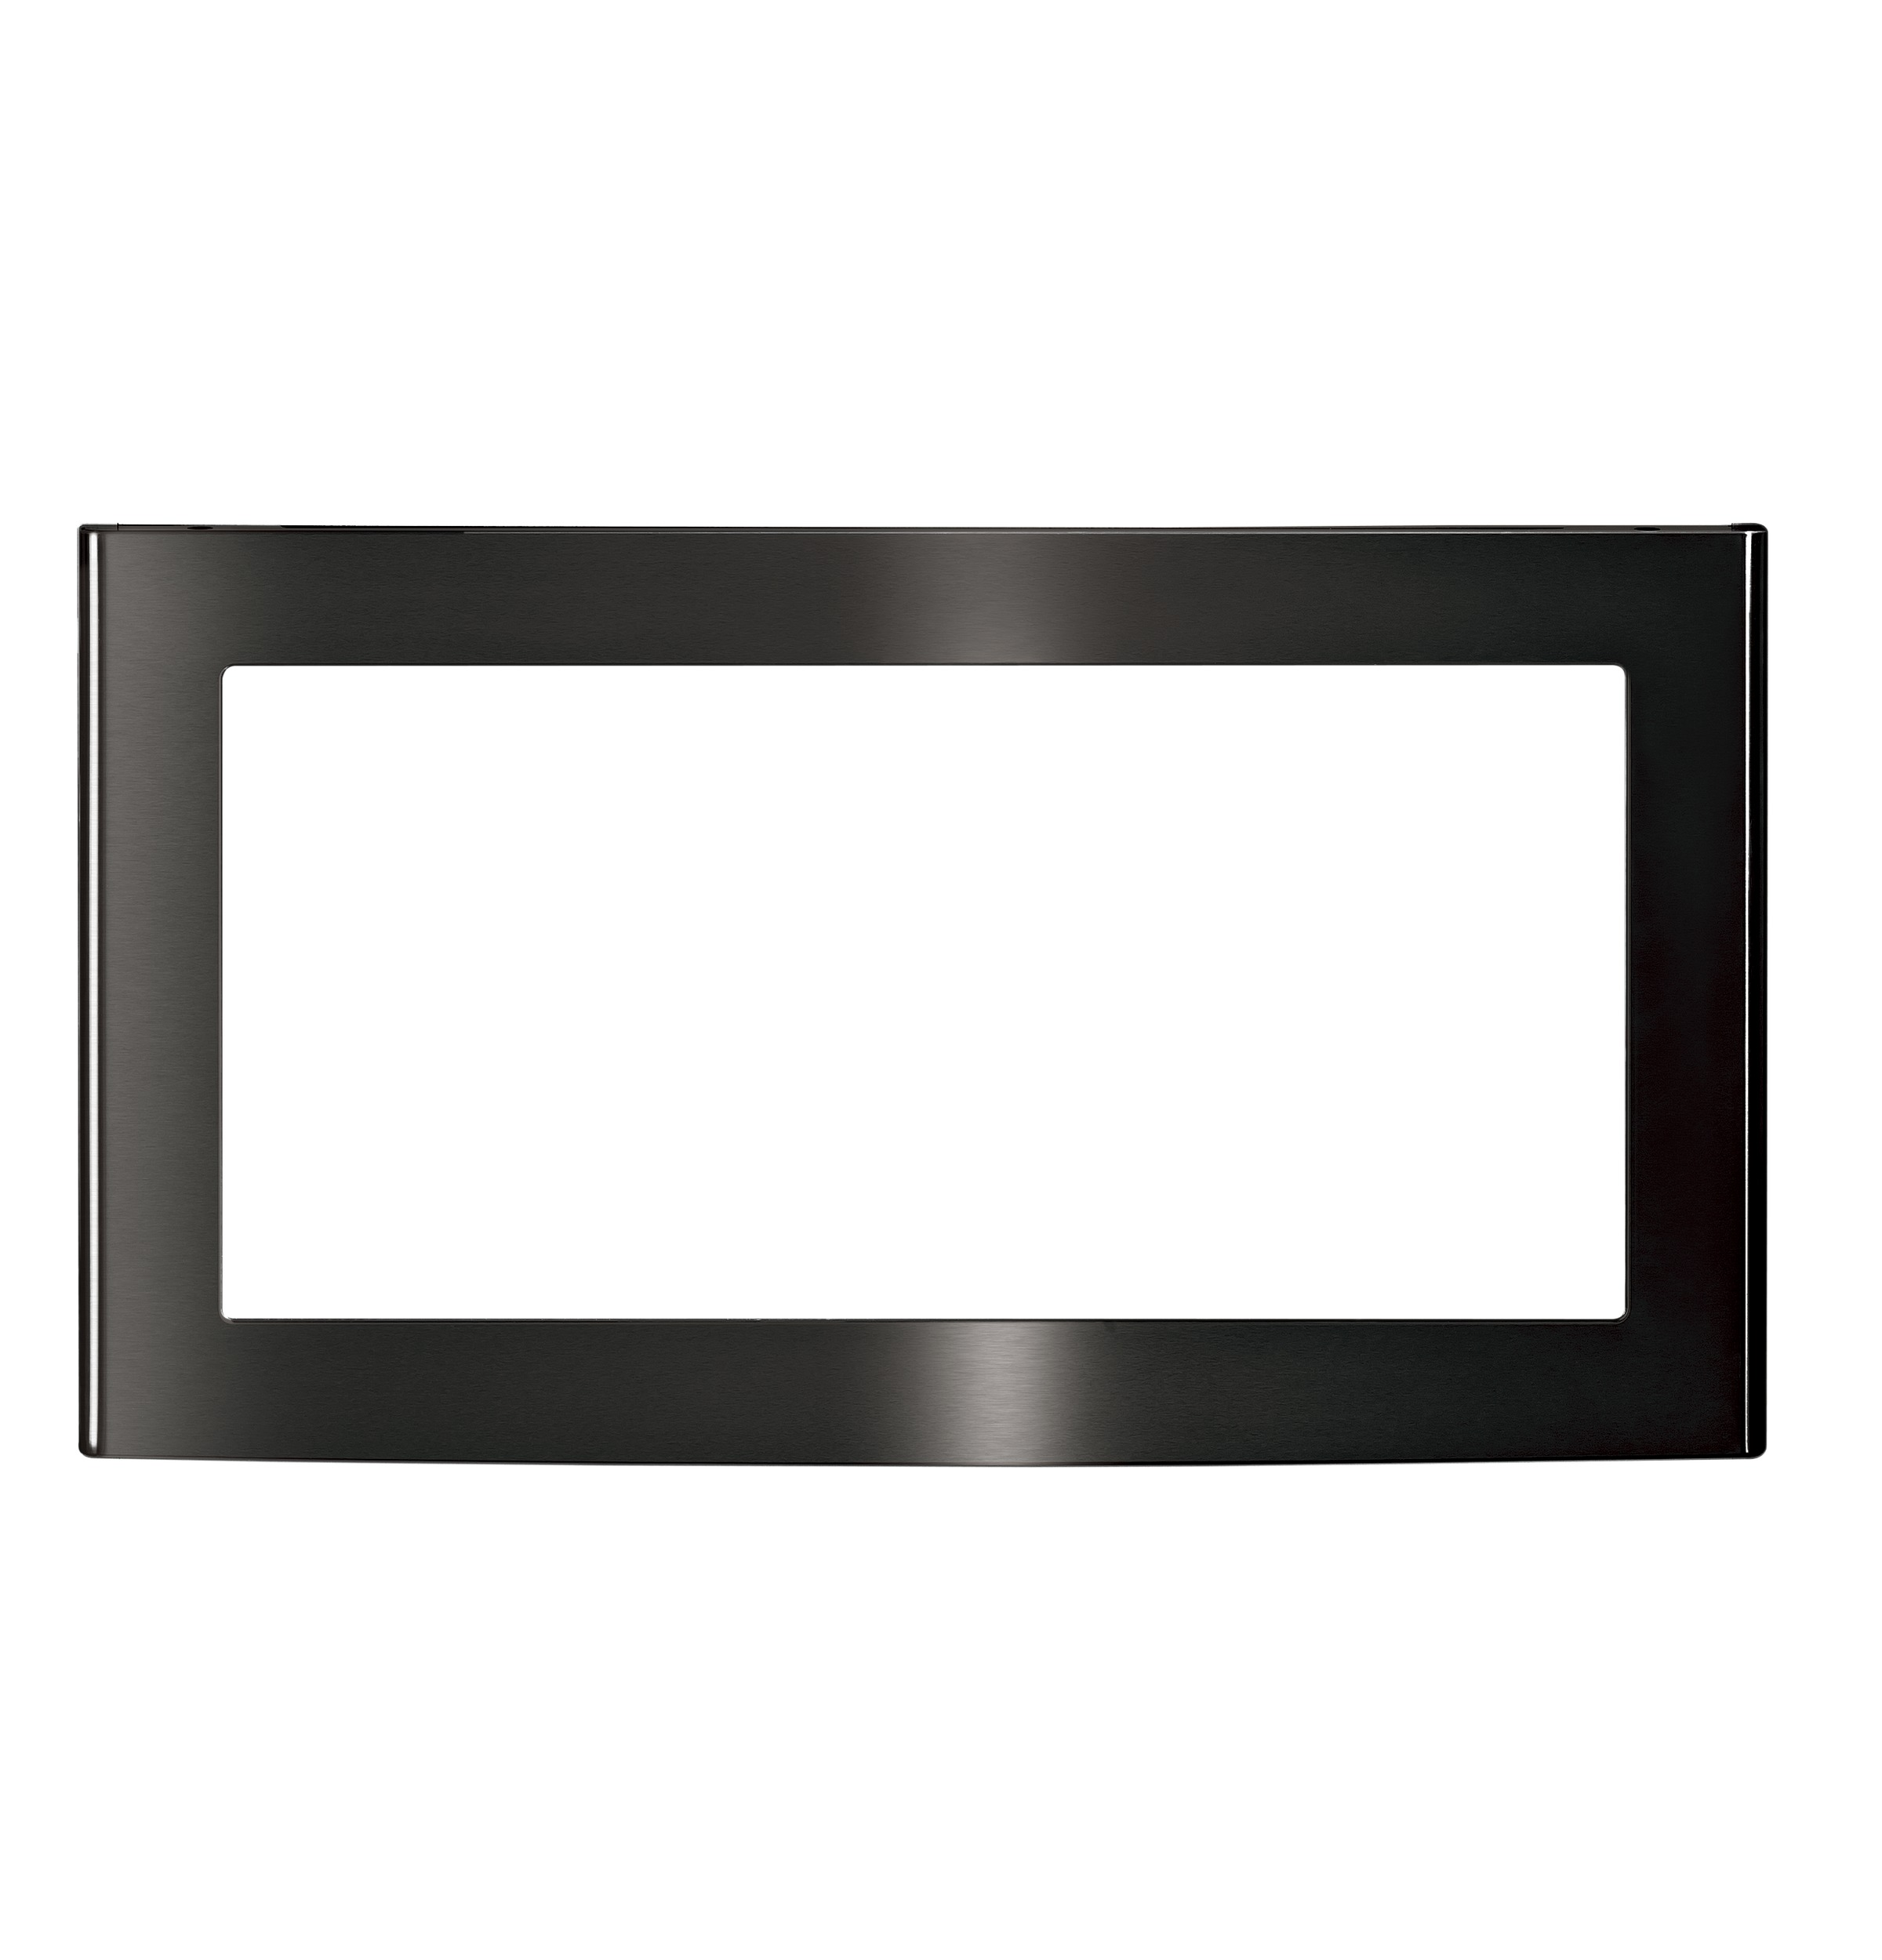 Model: PEM31BMTS | GE Profile GE Profile™ Series 1.1 Cu. Ft. Countertop Microwave Oven